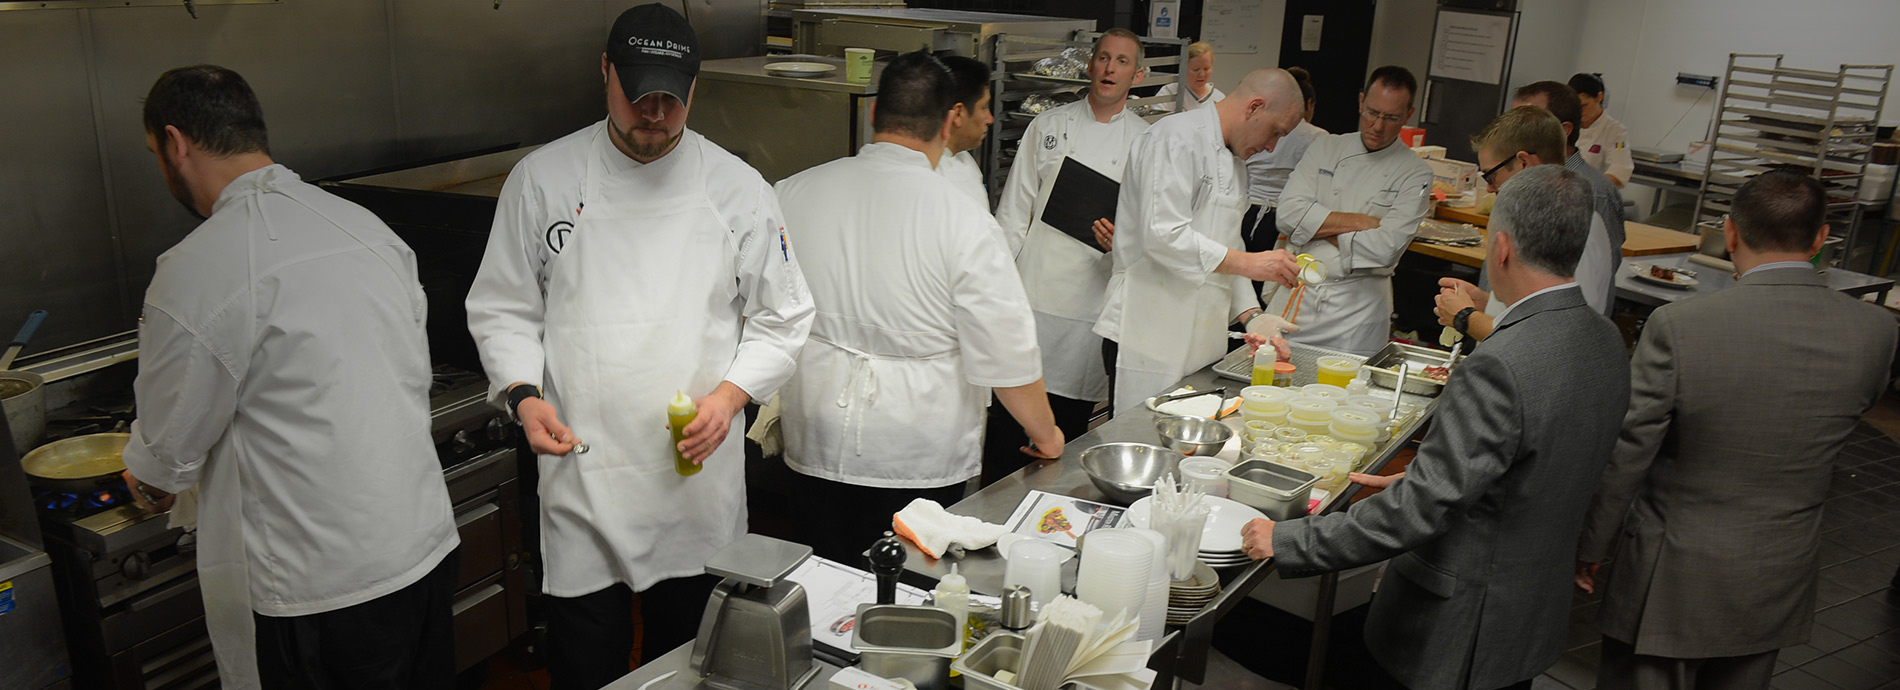 Ocean Prime team working in the kitchen